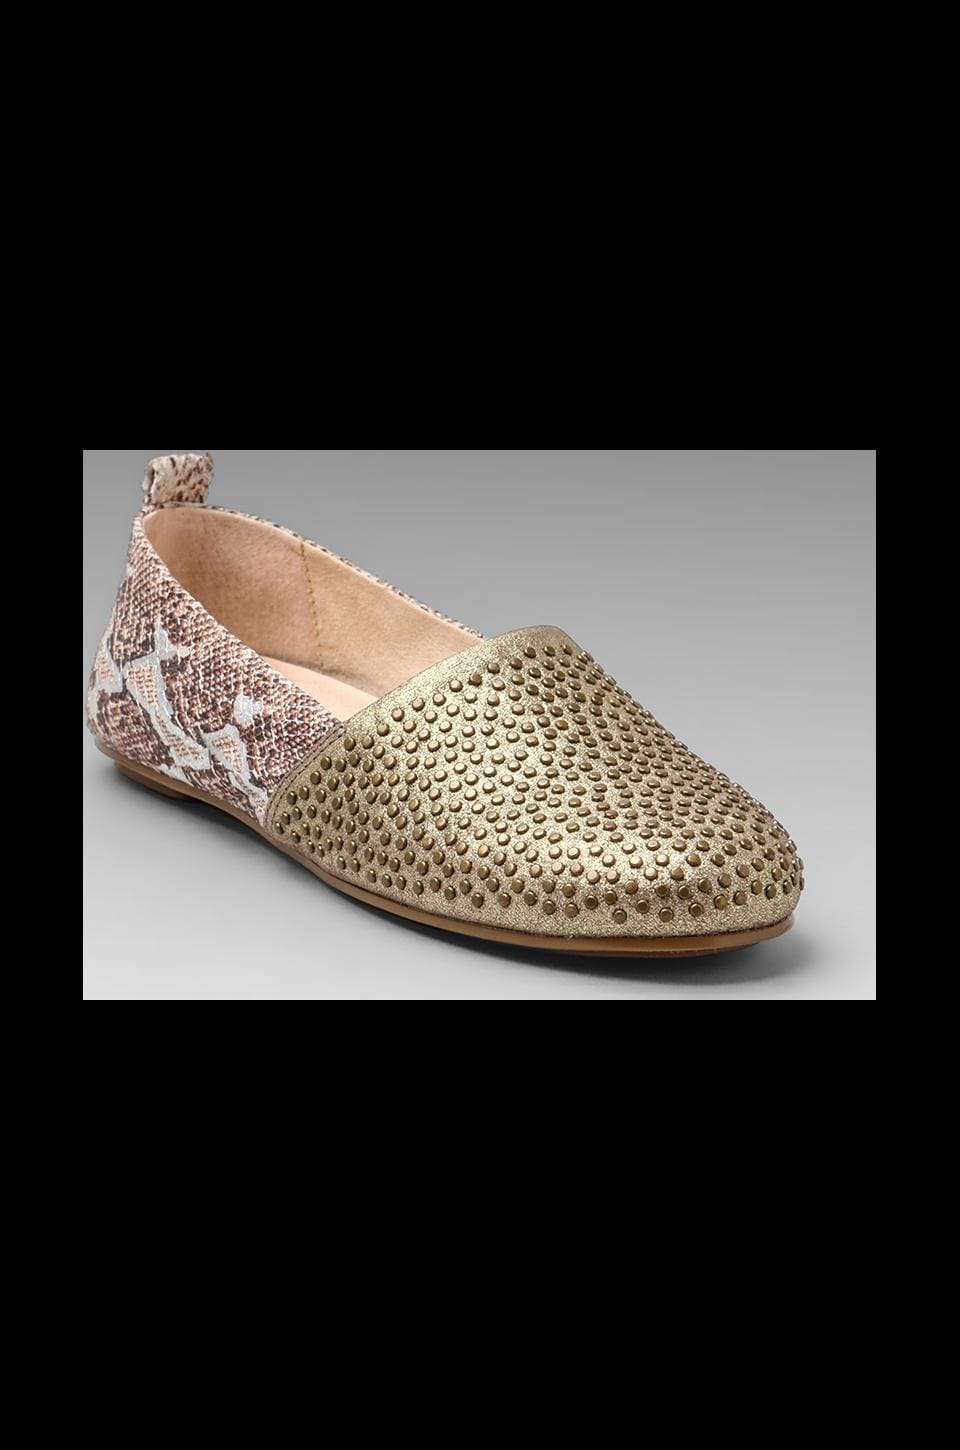 House of Harlow 1960 House of Harlow Stud Kye Flat in Brown/Rosegold